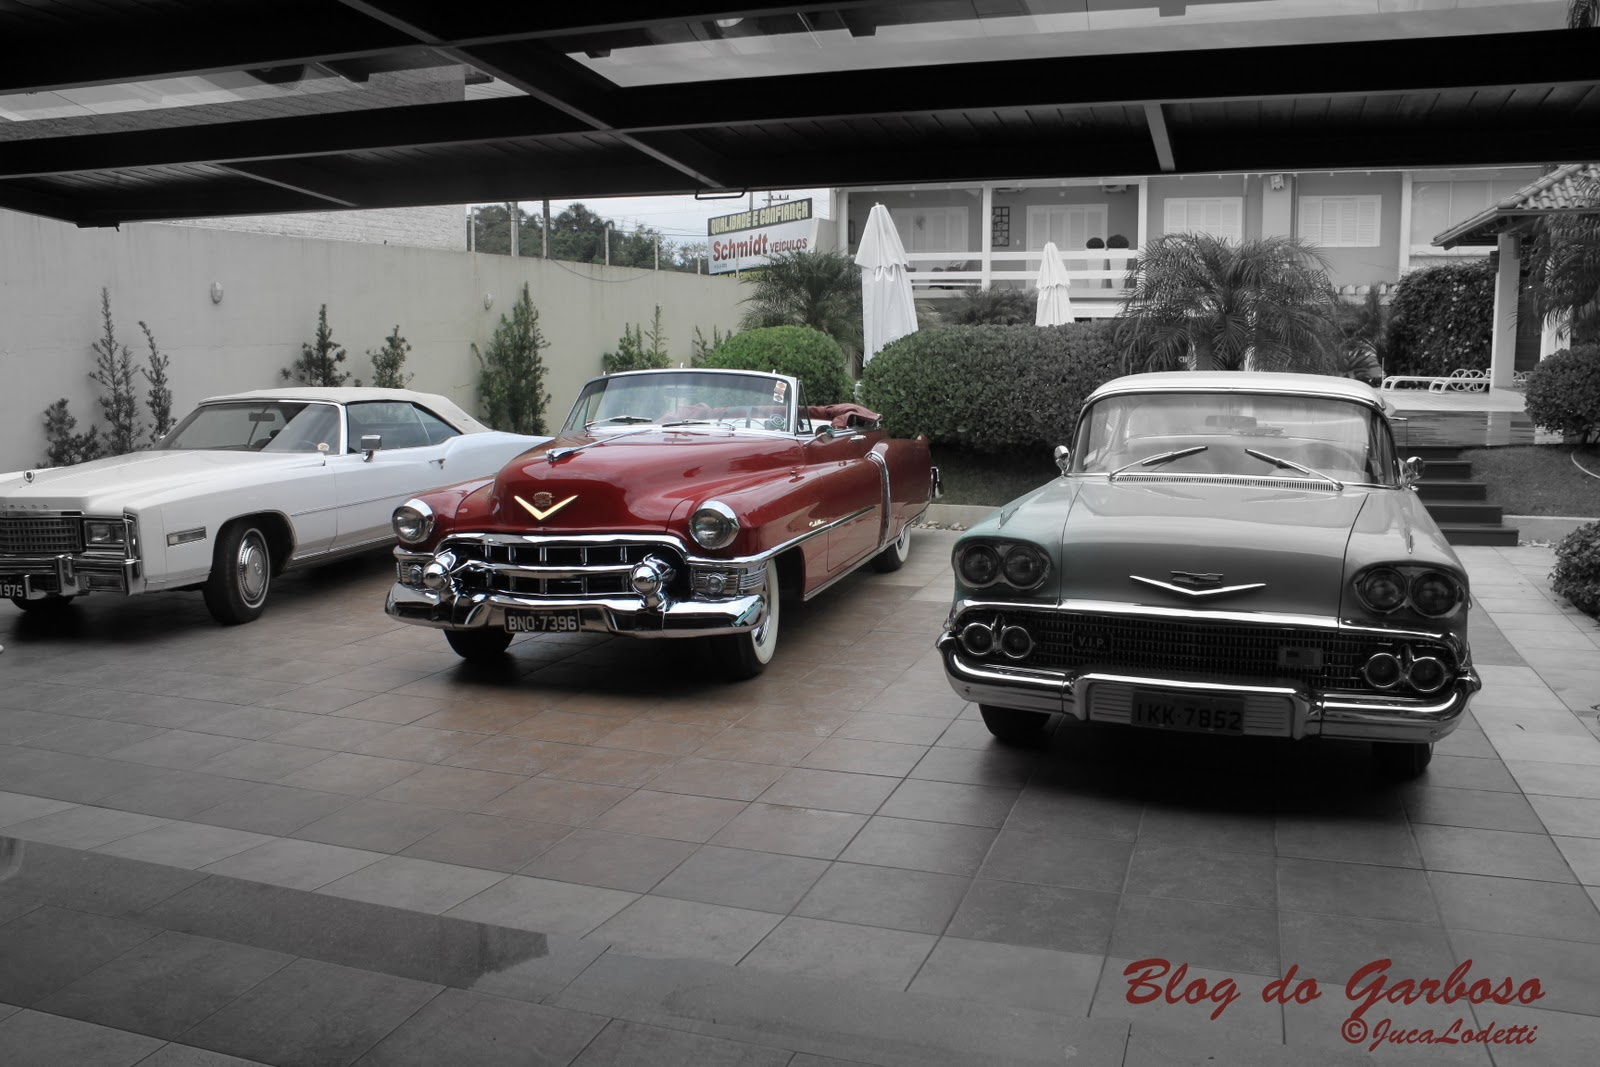 Blog do garboso a terra natal 2 dream garage for Garage renault bouc bel air